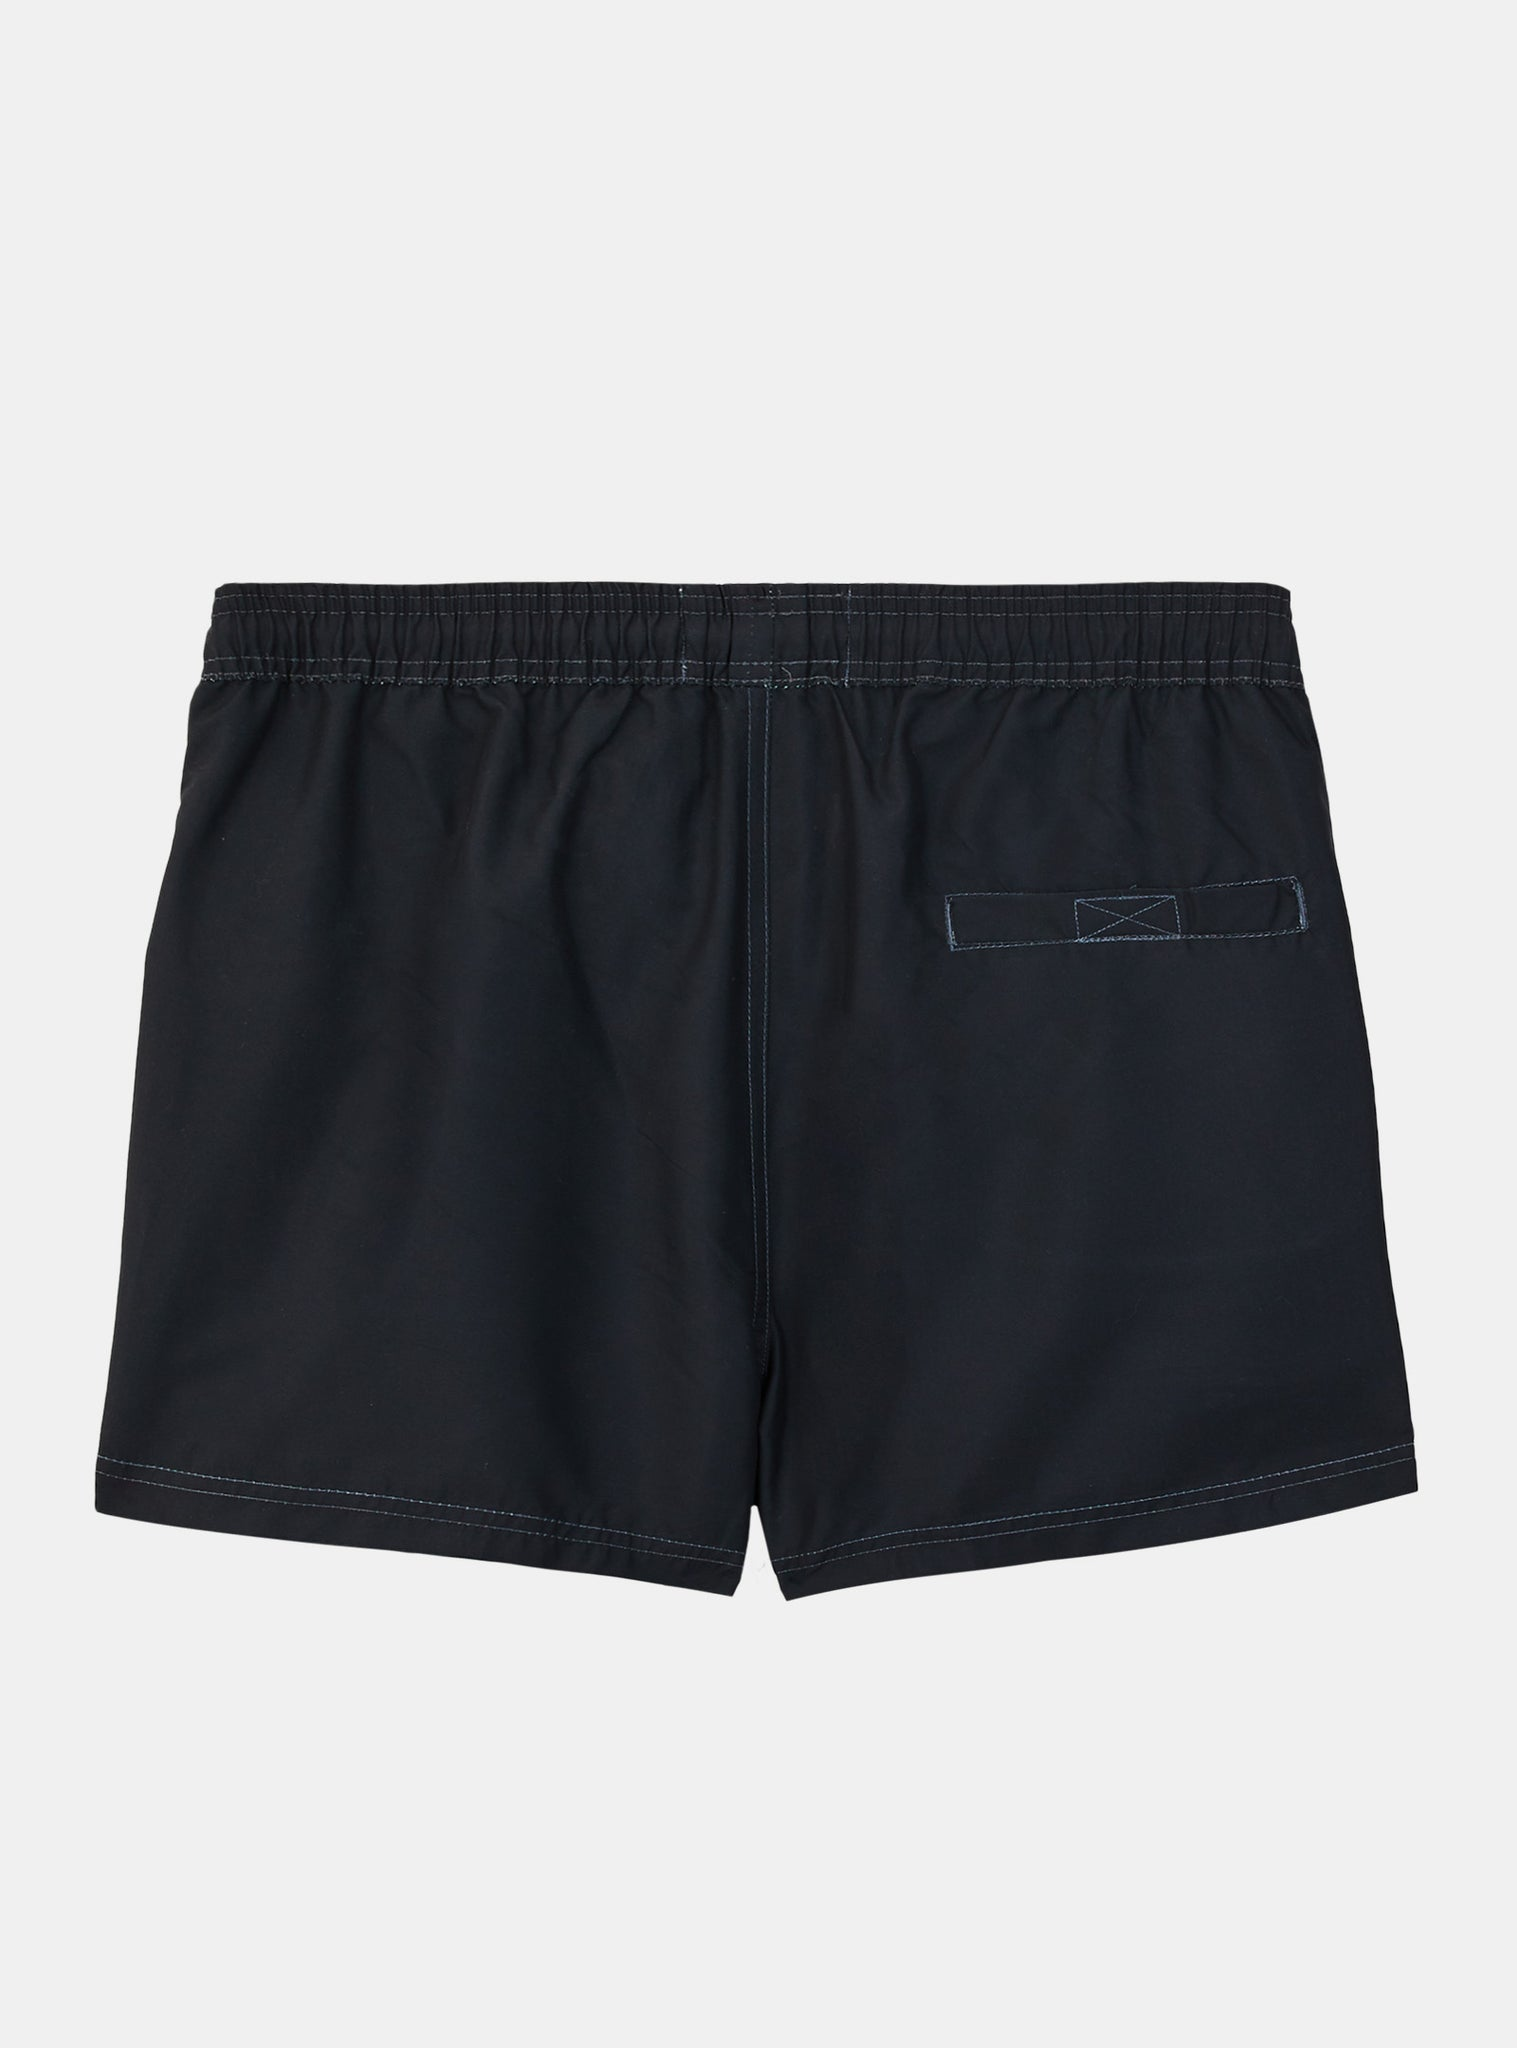 Chill Spa Volley Short Black